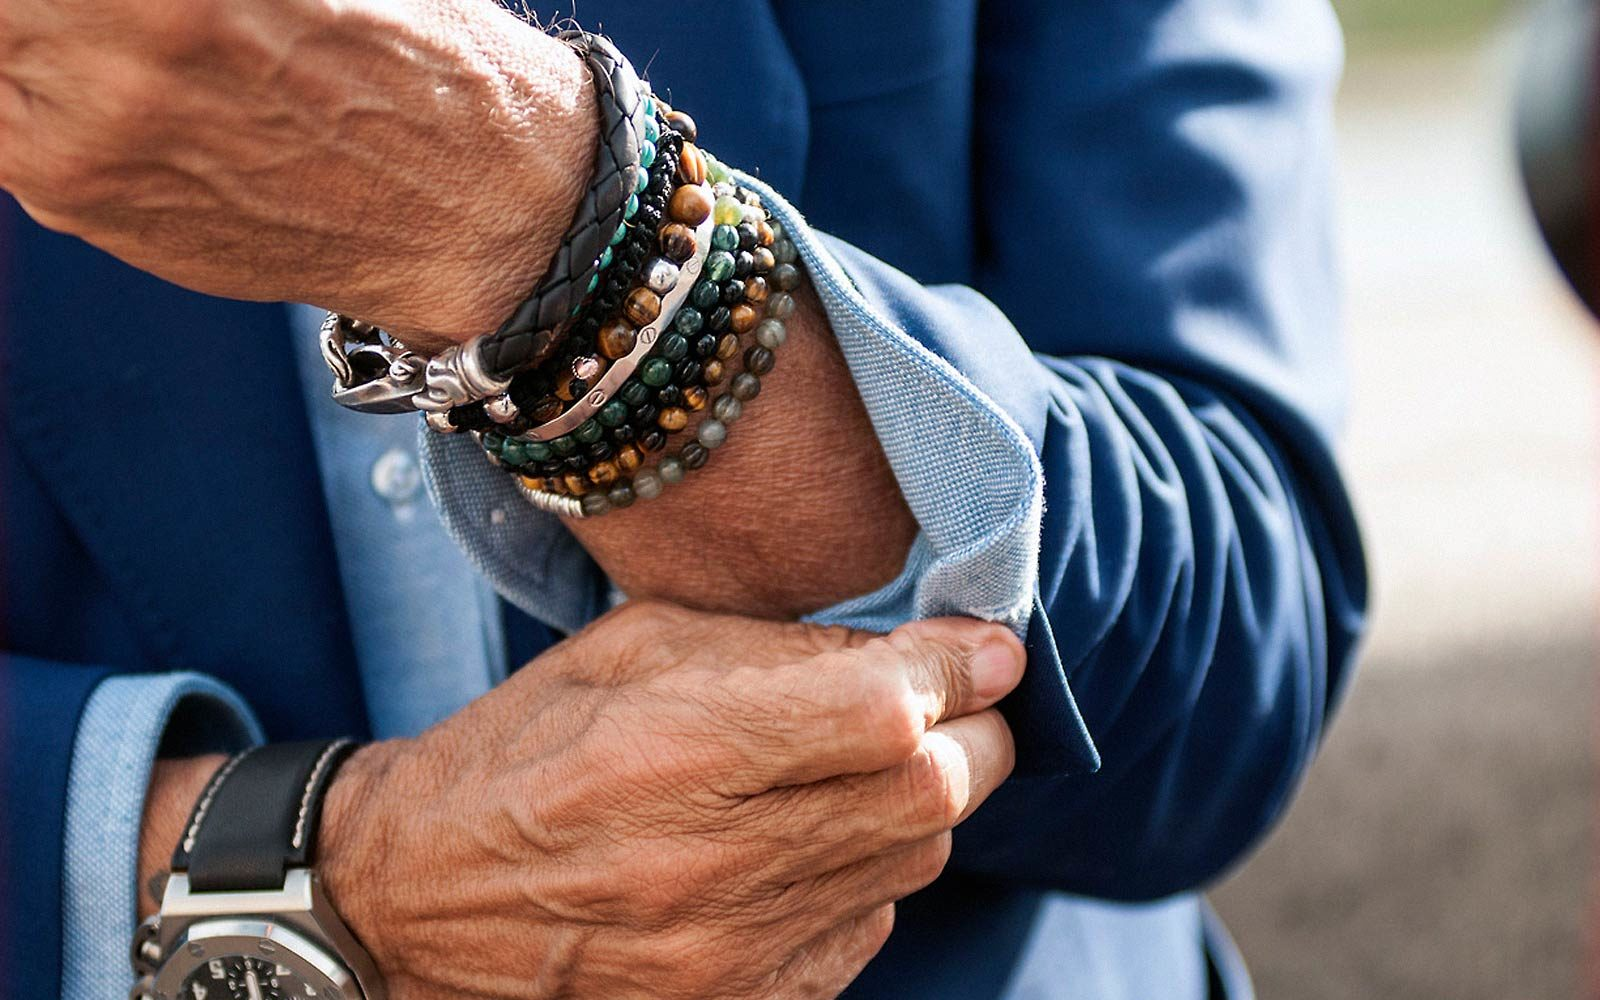 Are You Buying A Men's Jewellery? What To Look For?